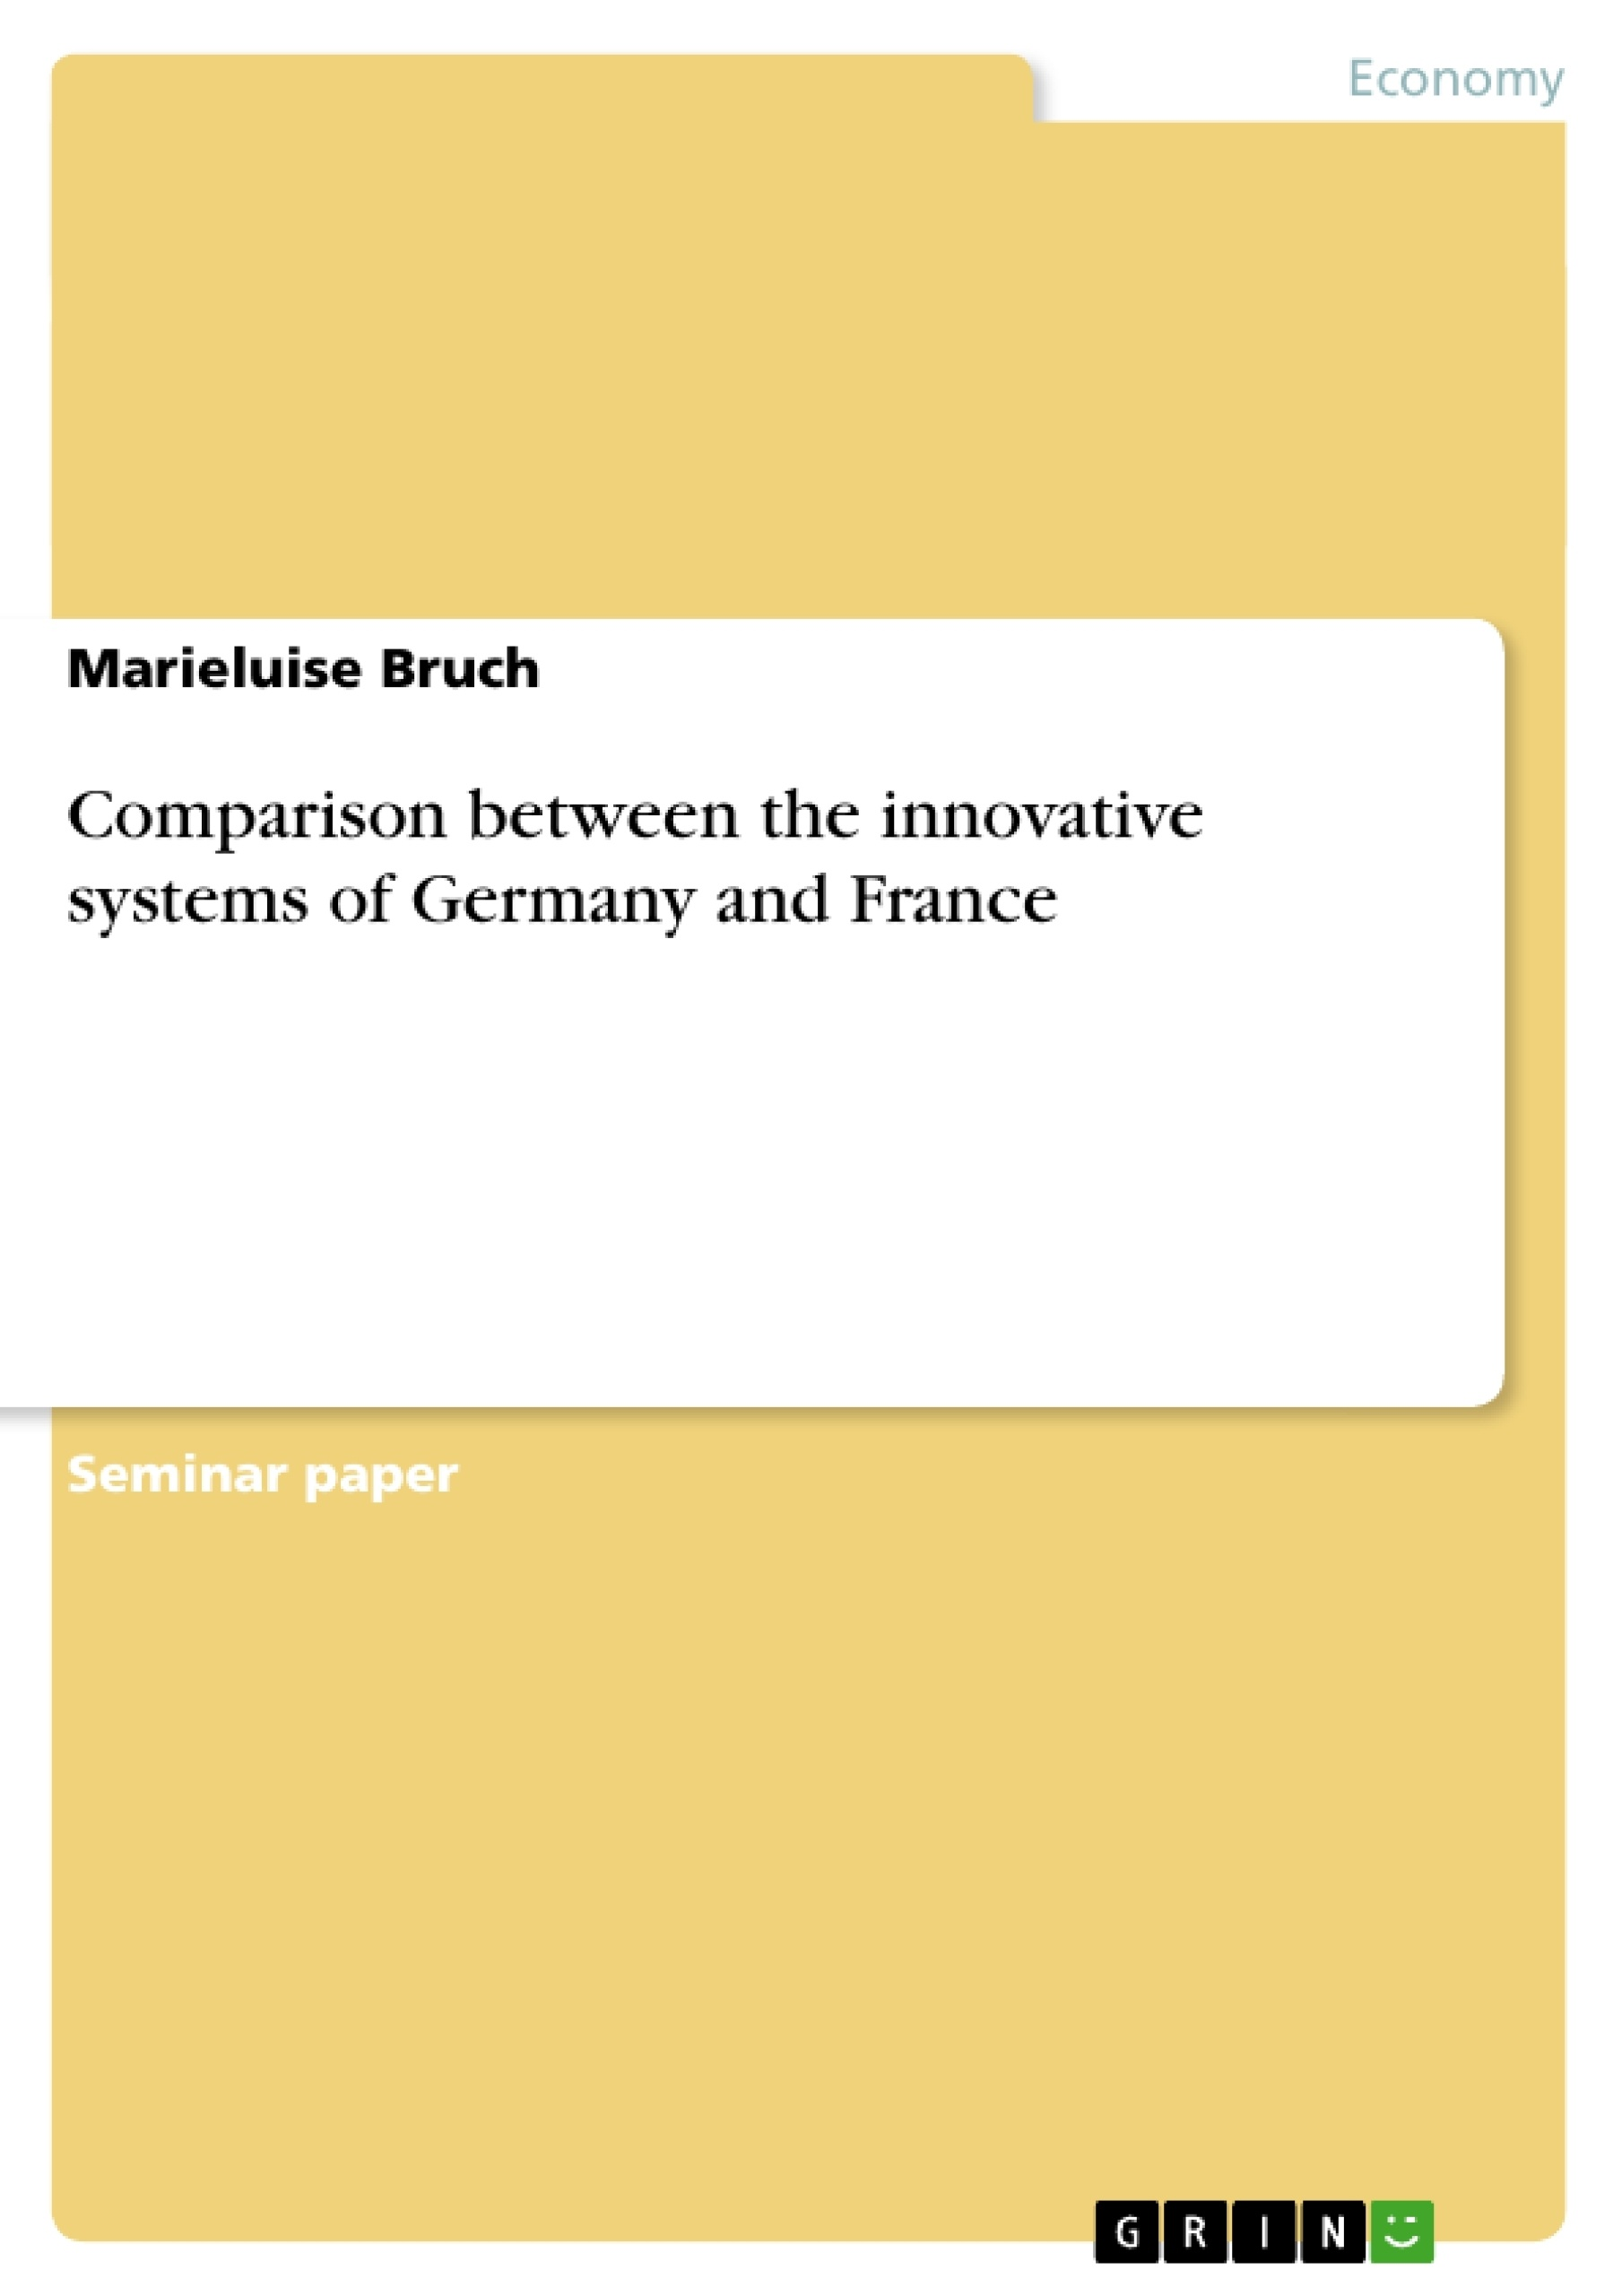 Title: Comparison between the innovative systems of Germany and France